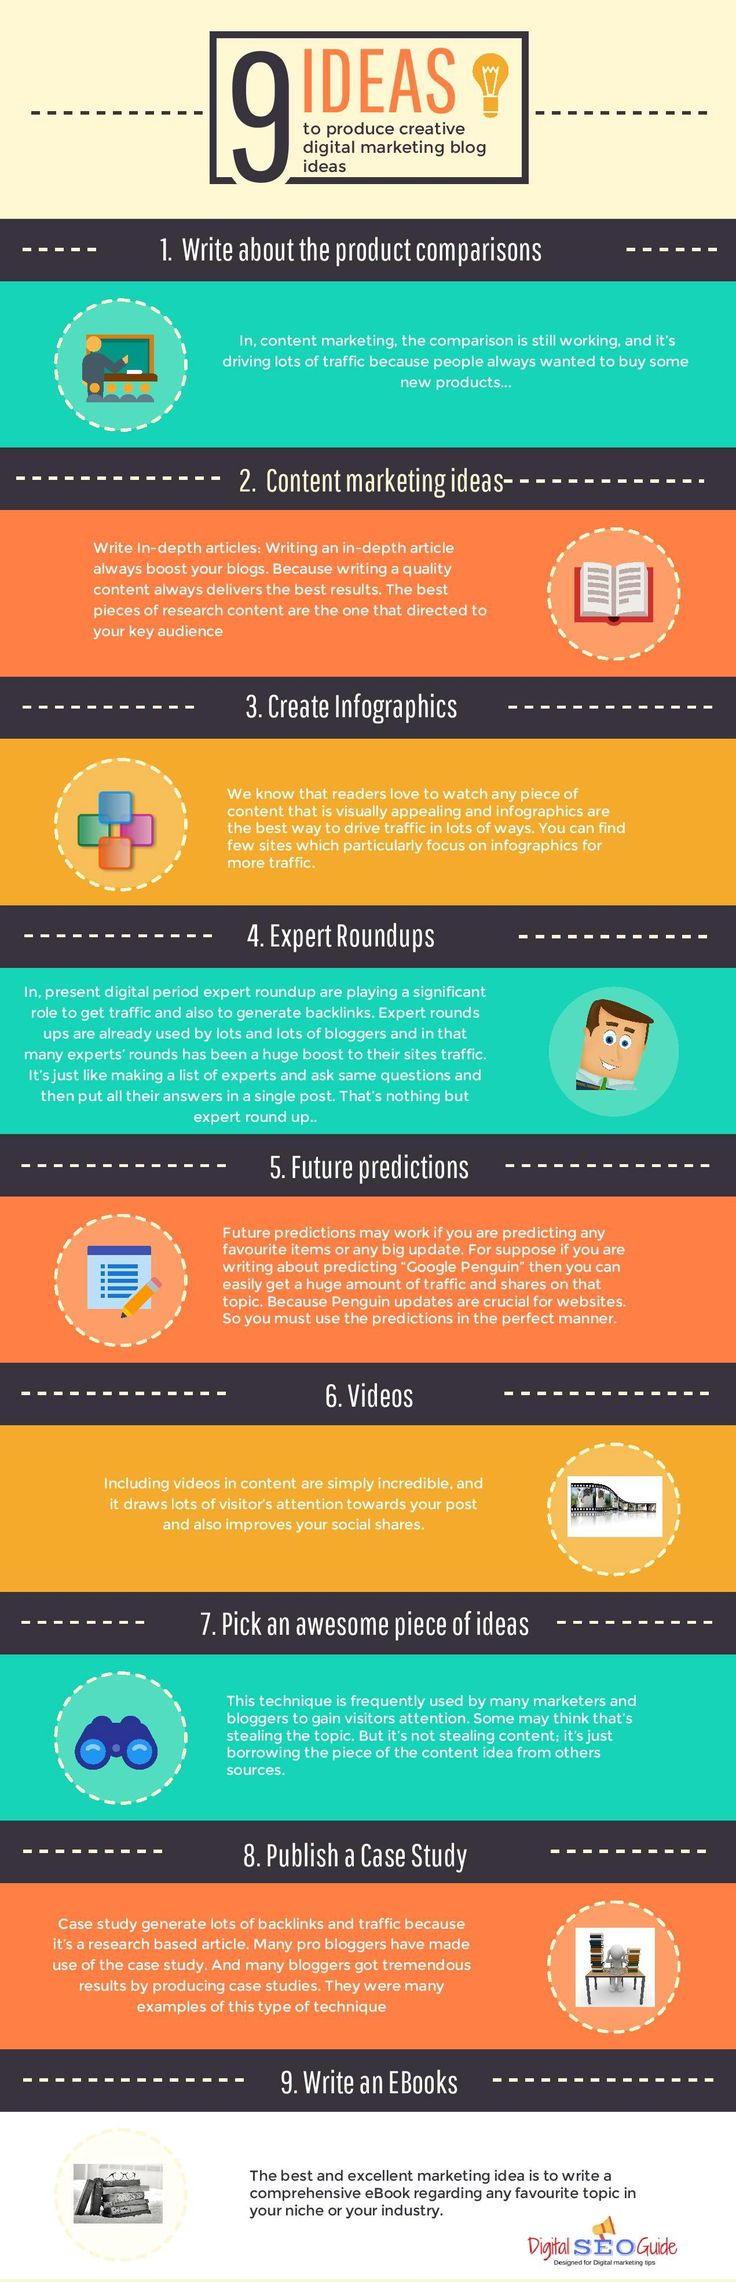 9 best ideas to produce creative digital marketing blog idea with an infographic: